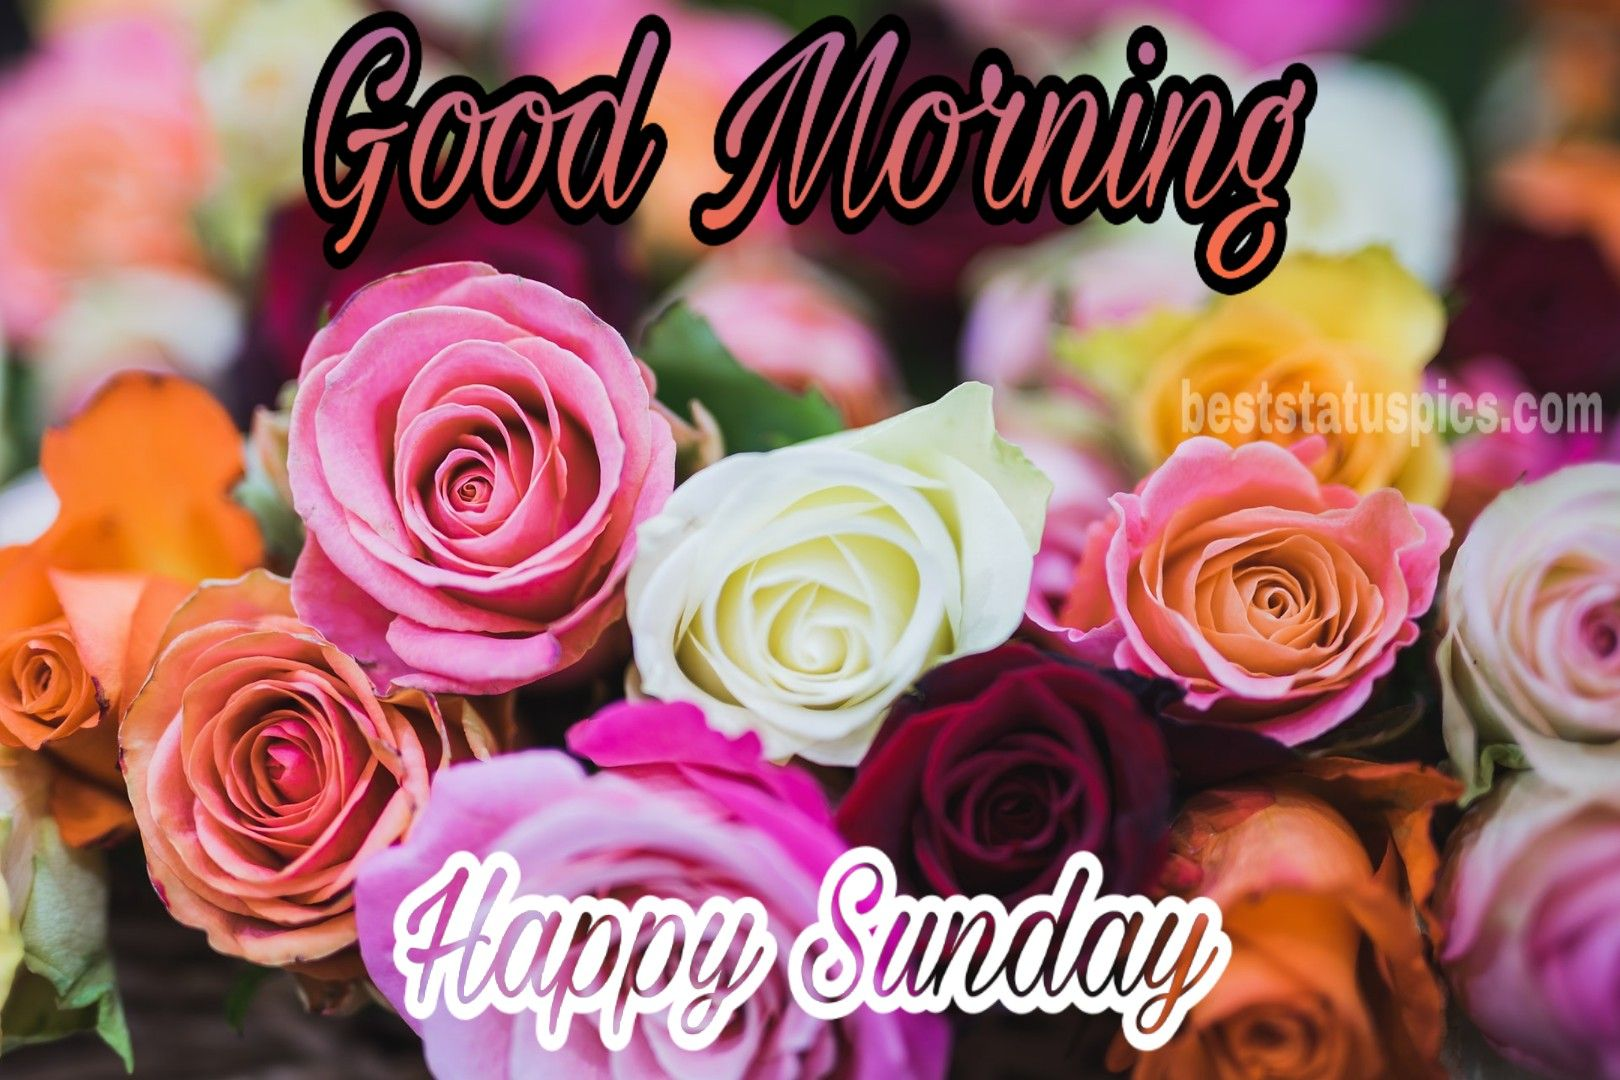 Good Morning Happy Sunday Images For Whatsapp DP [2020] in